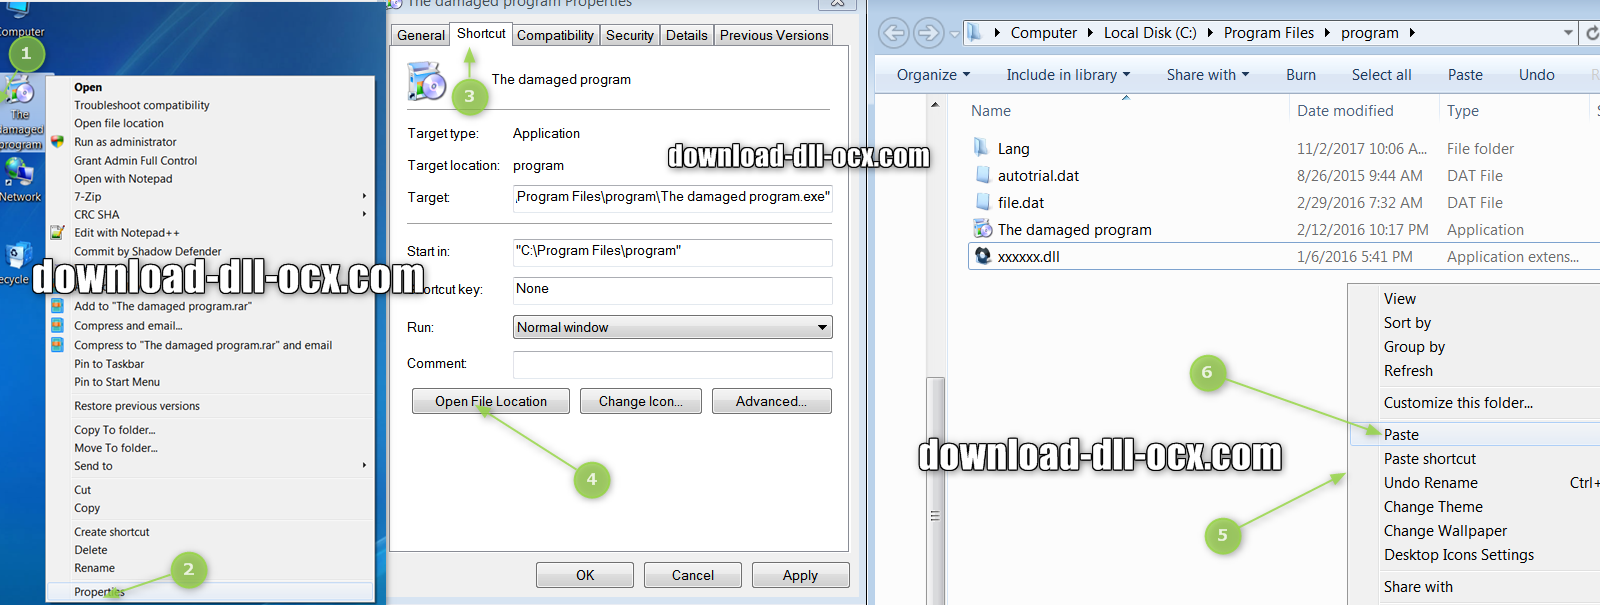 how to install CoachUsd.dll file? for fix missing